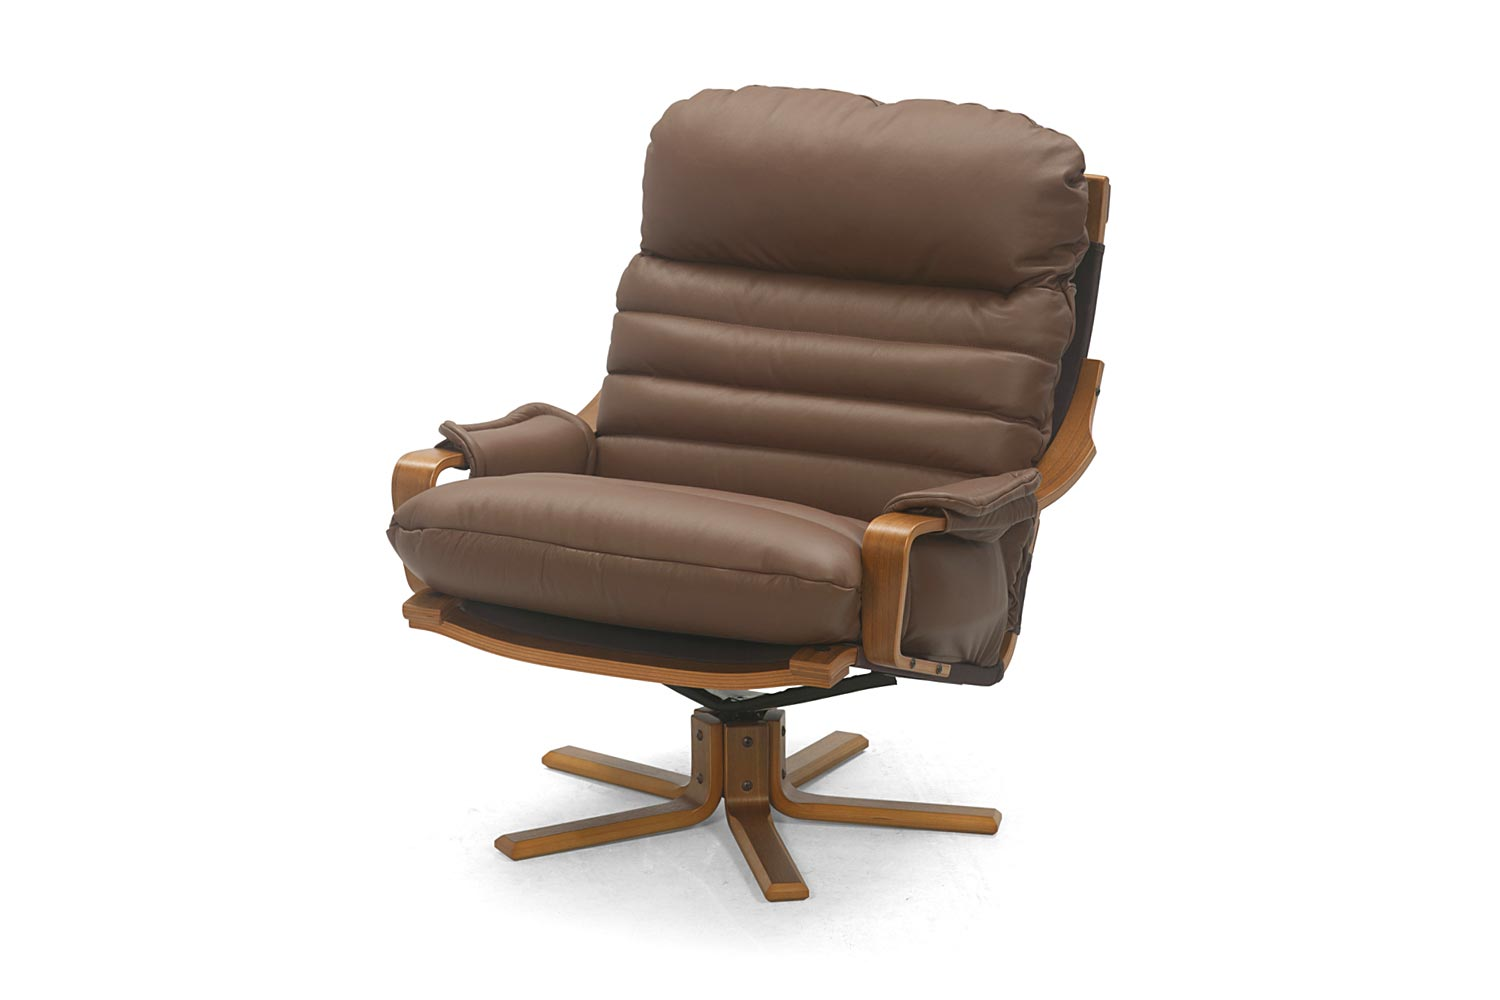 Austin Swivel Chair Tessa Furniture